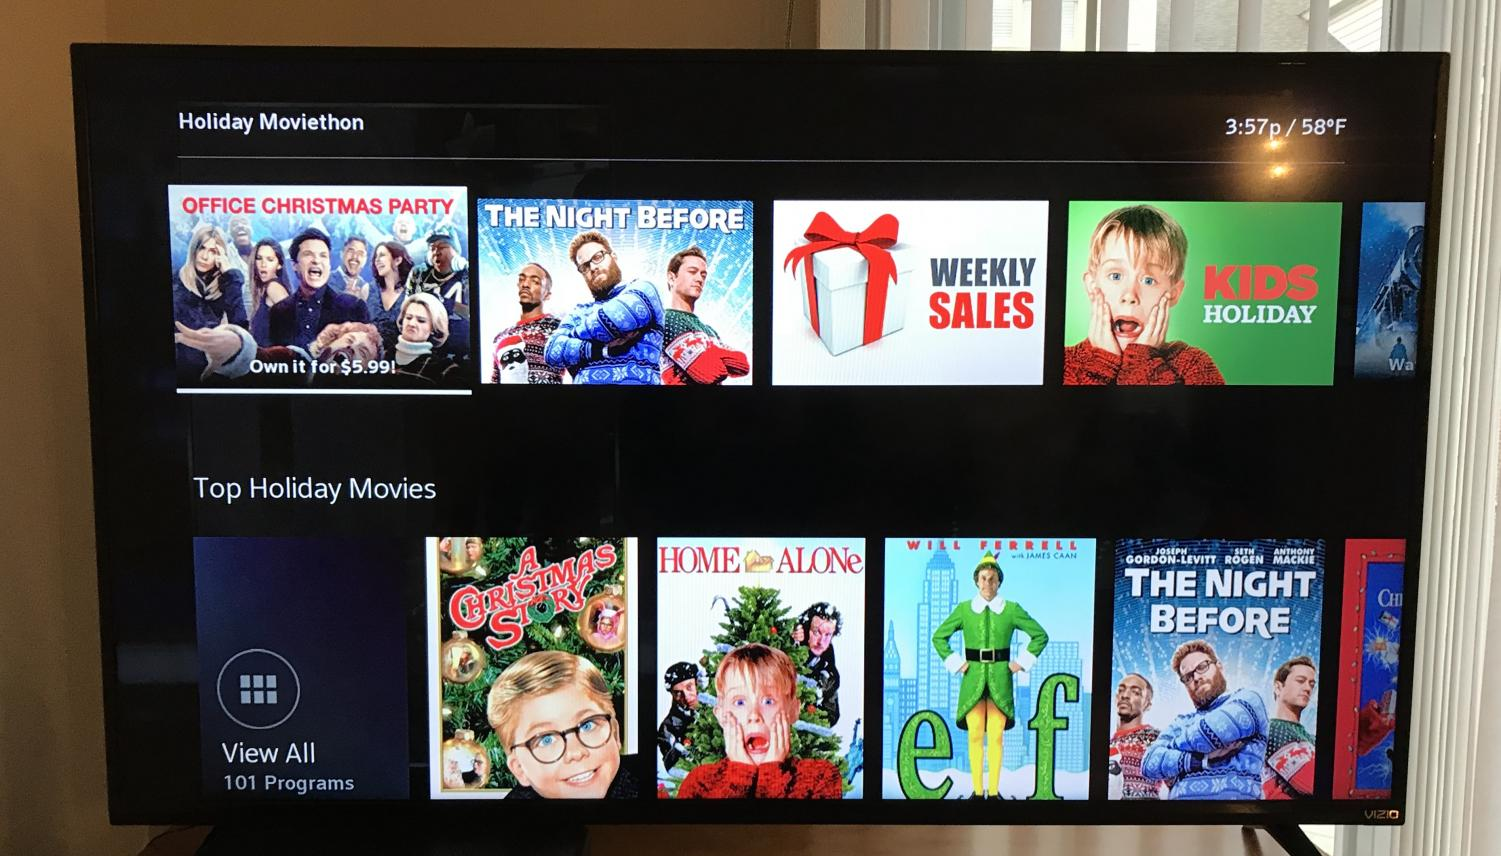 This holiday season is sure to keep you occupied with many movie options for viewers.